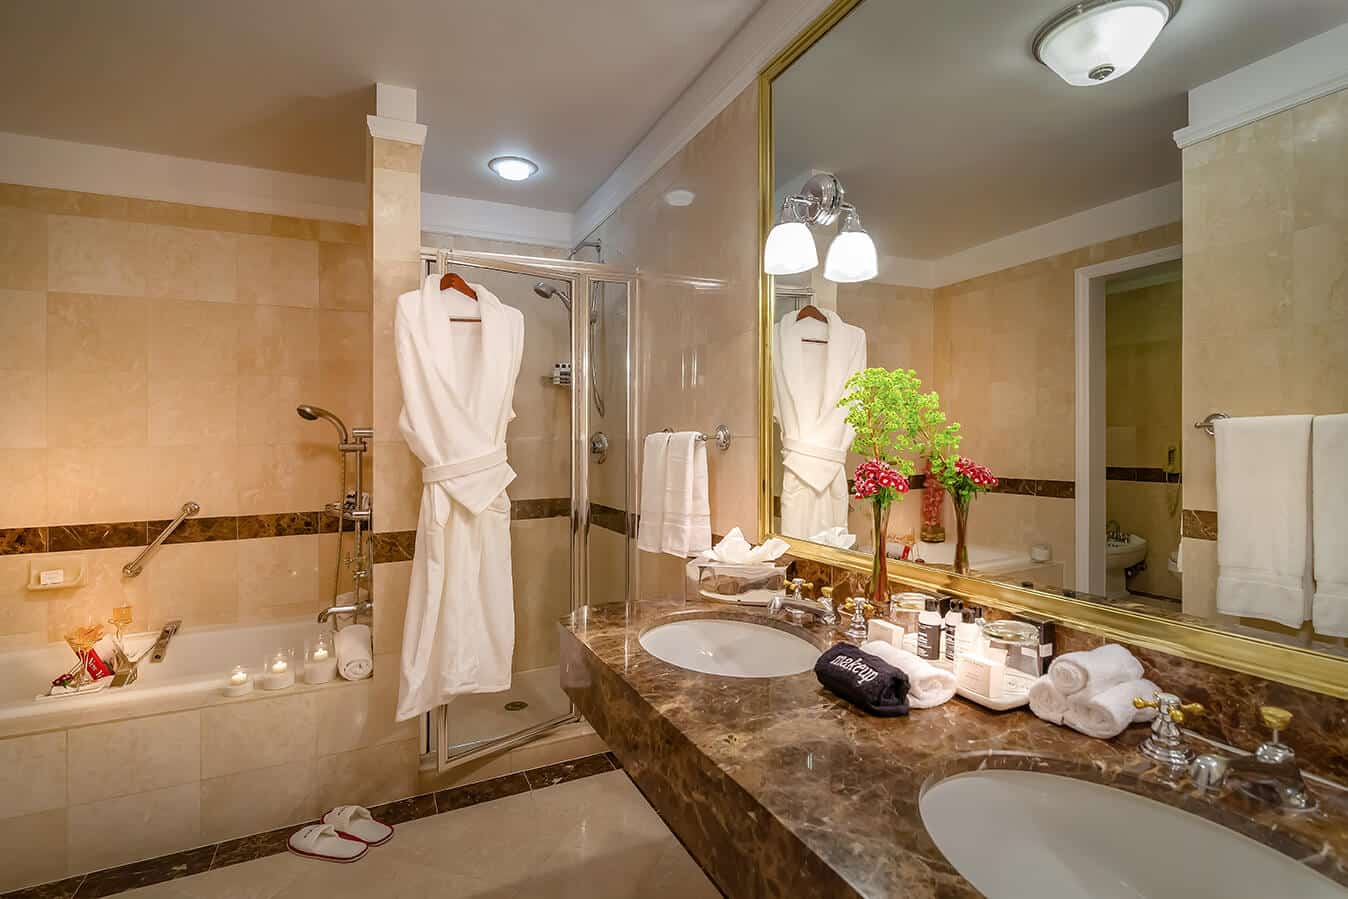 NYC Accommodations: Avalon Guest Room Bath